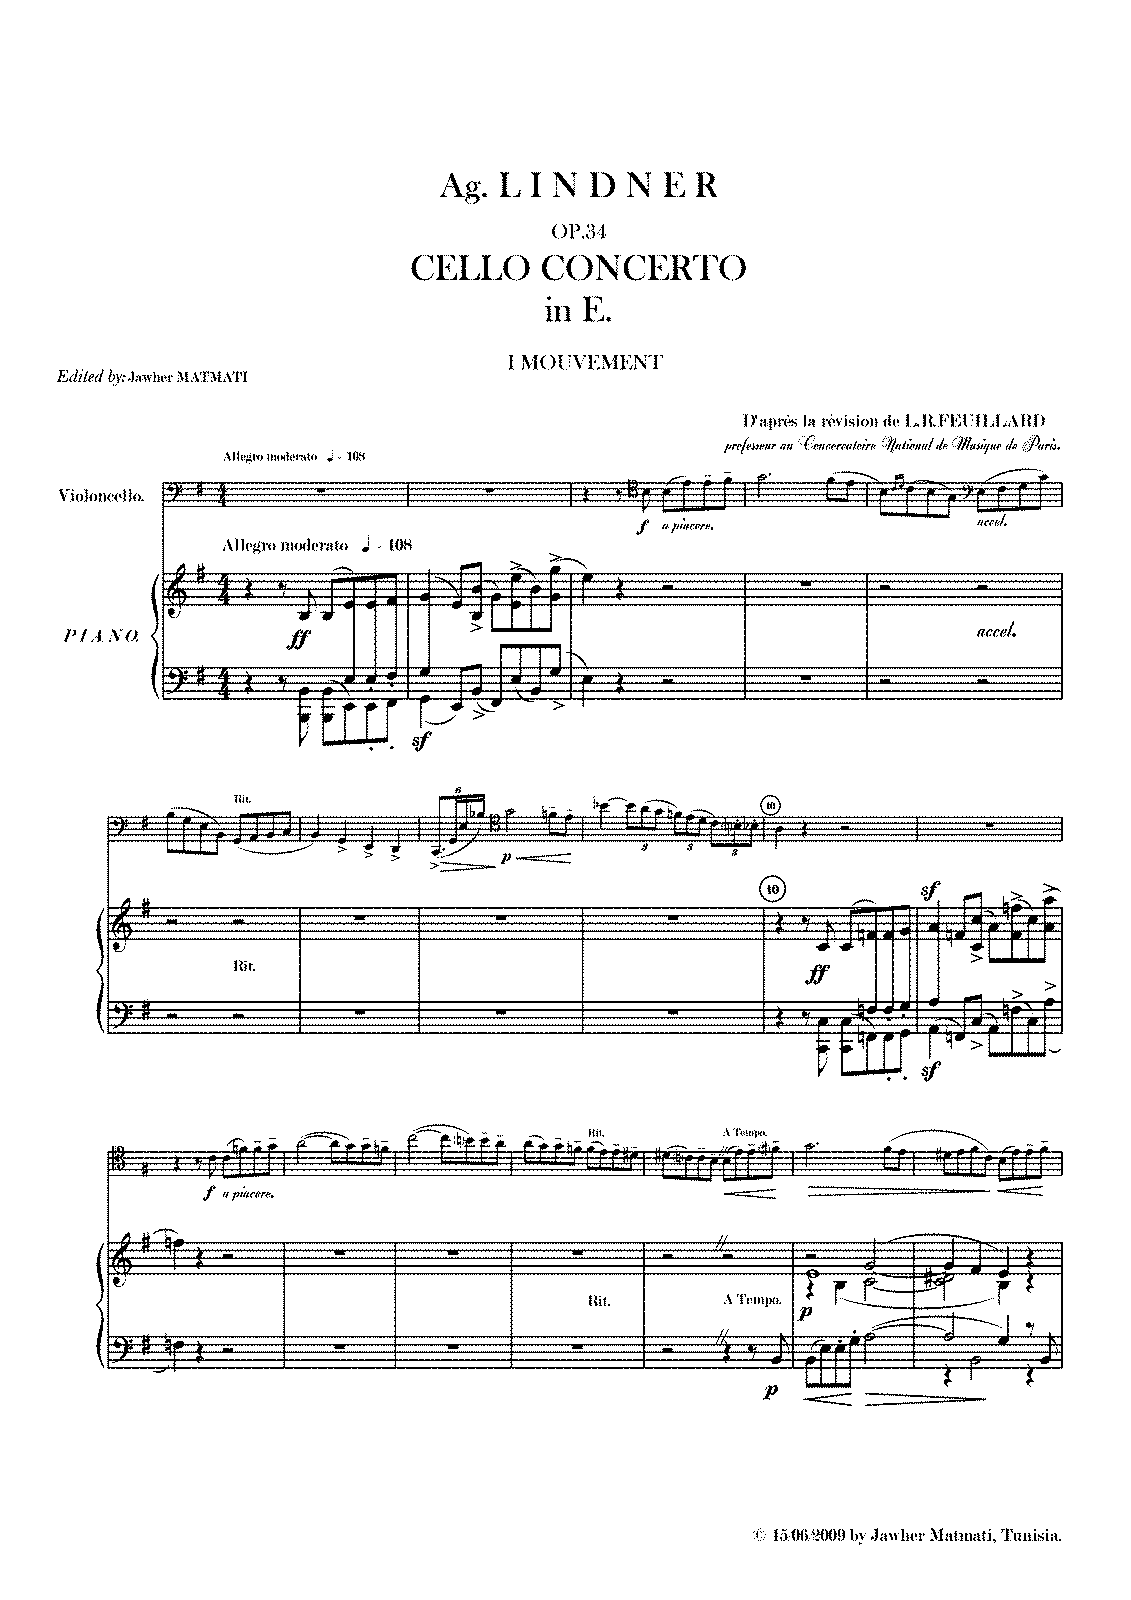 PMLP74585-Cello concerto, op.34 (First MOUVEMENT) Edit,J.MATMATI.pdf